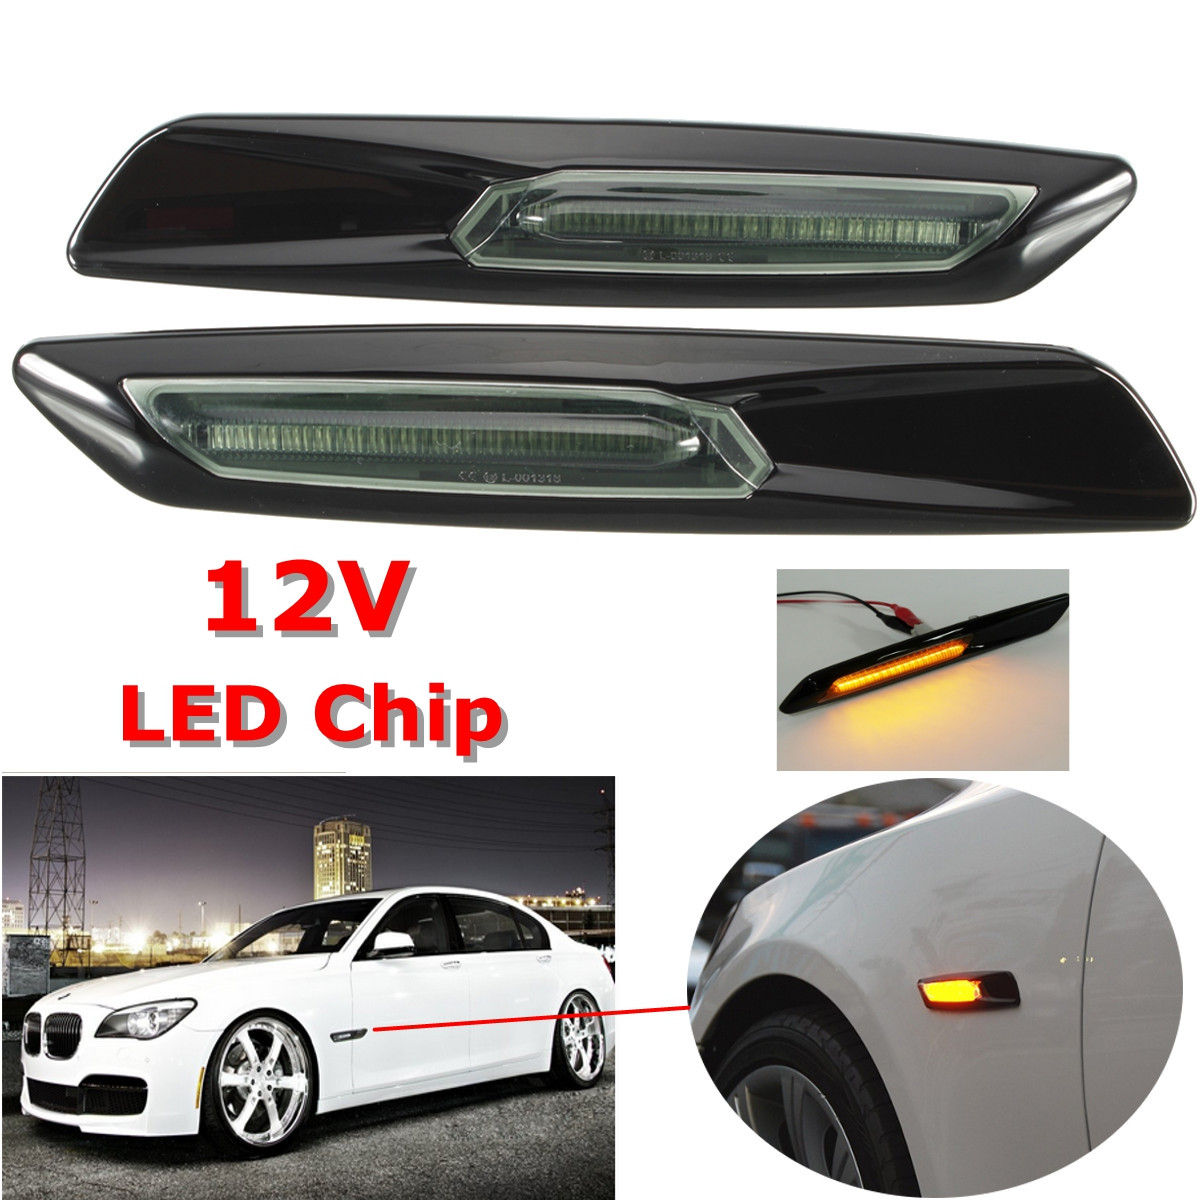 Pair Car LED Side Marker Light Indicator Lamps Amber White For BMW E60 E61 F10 E90 E91 E92 E93 E81 E82 E87 E88 image